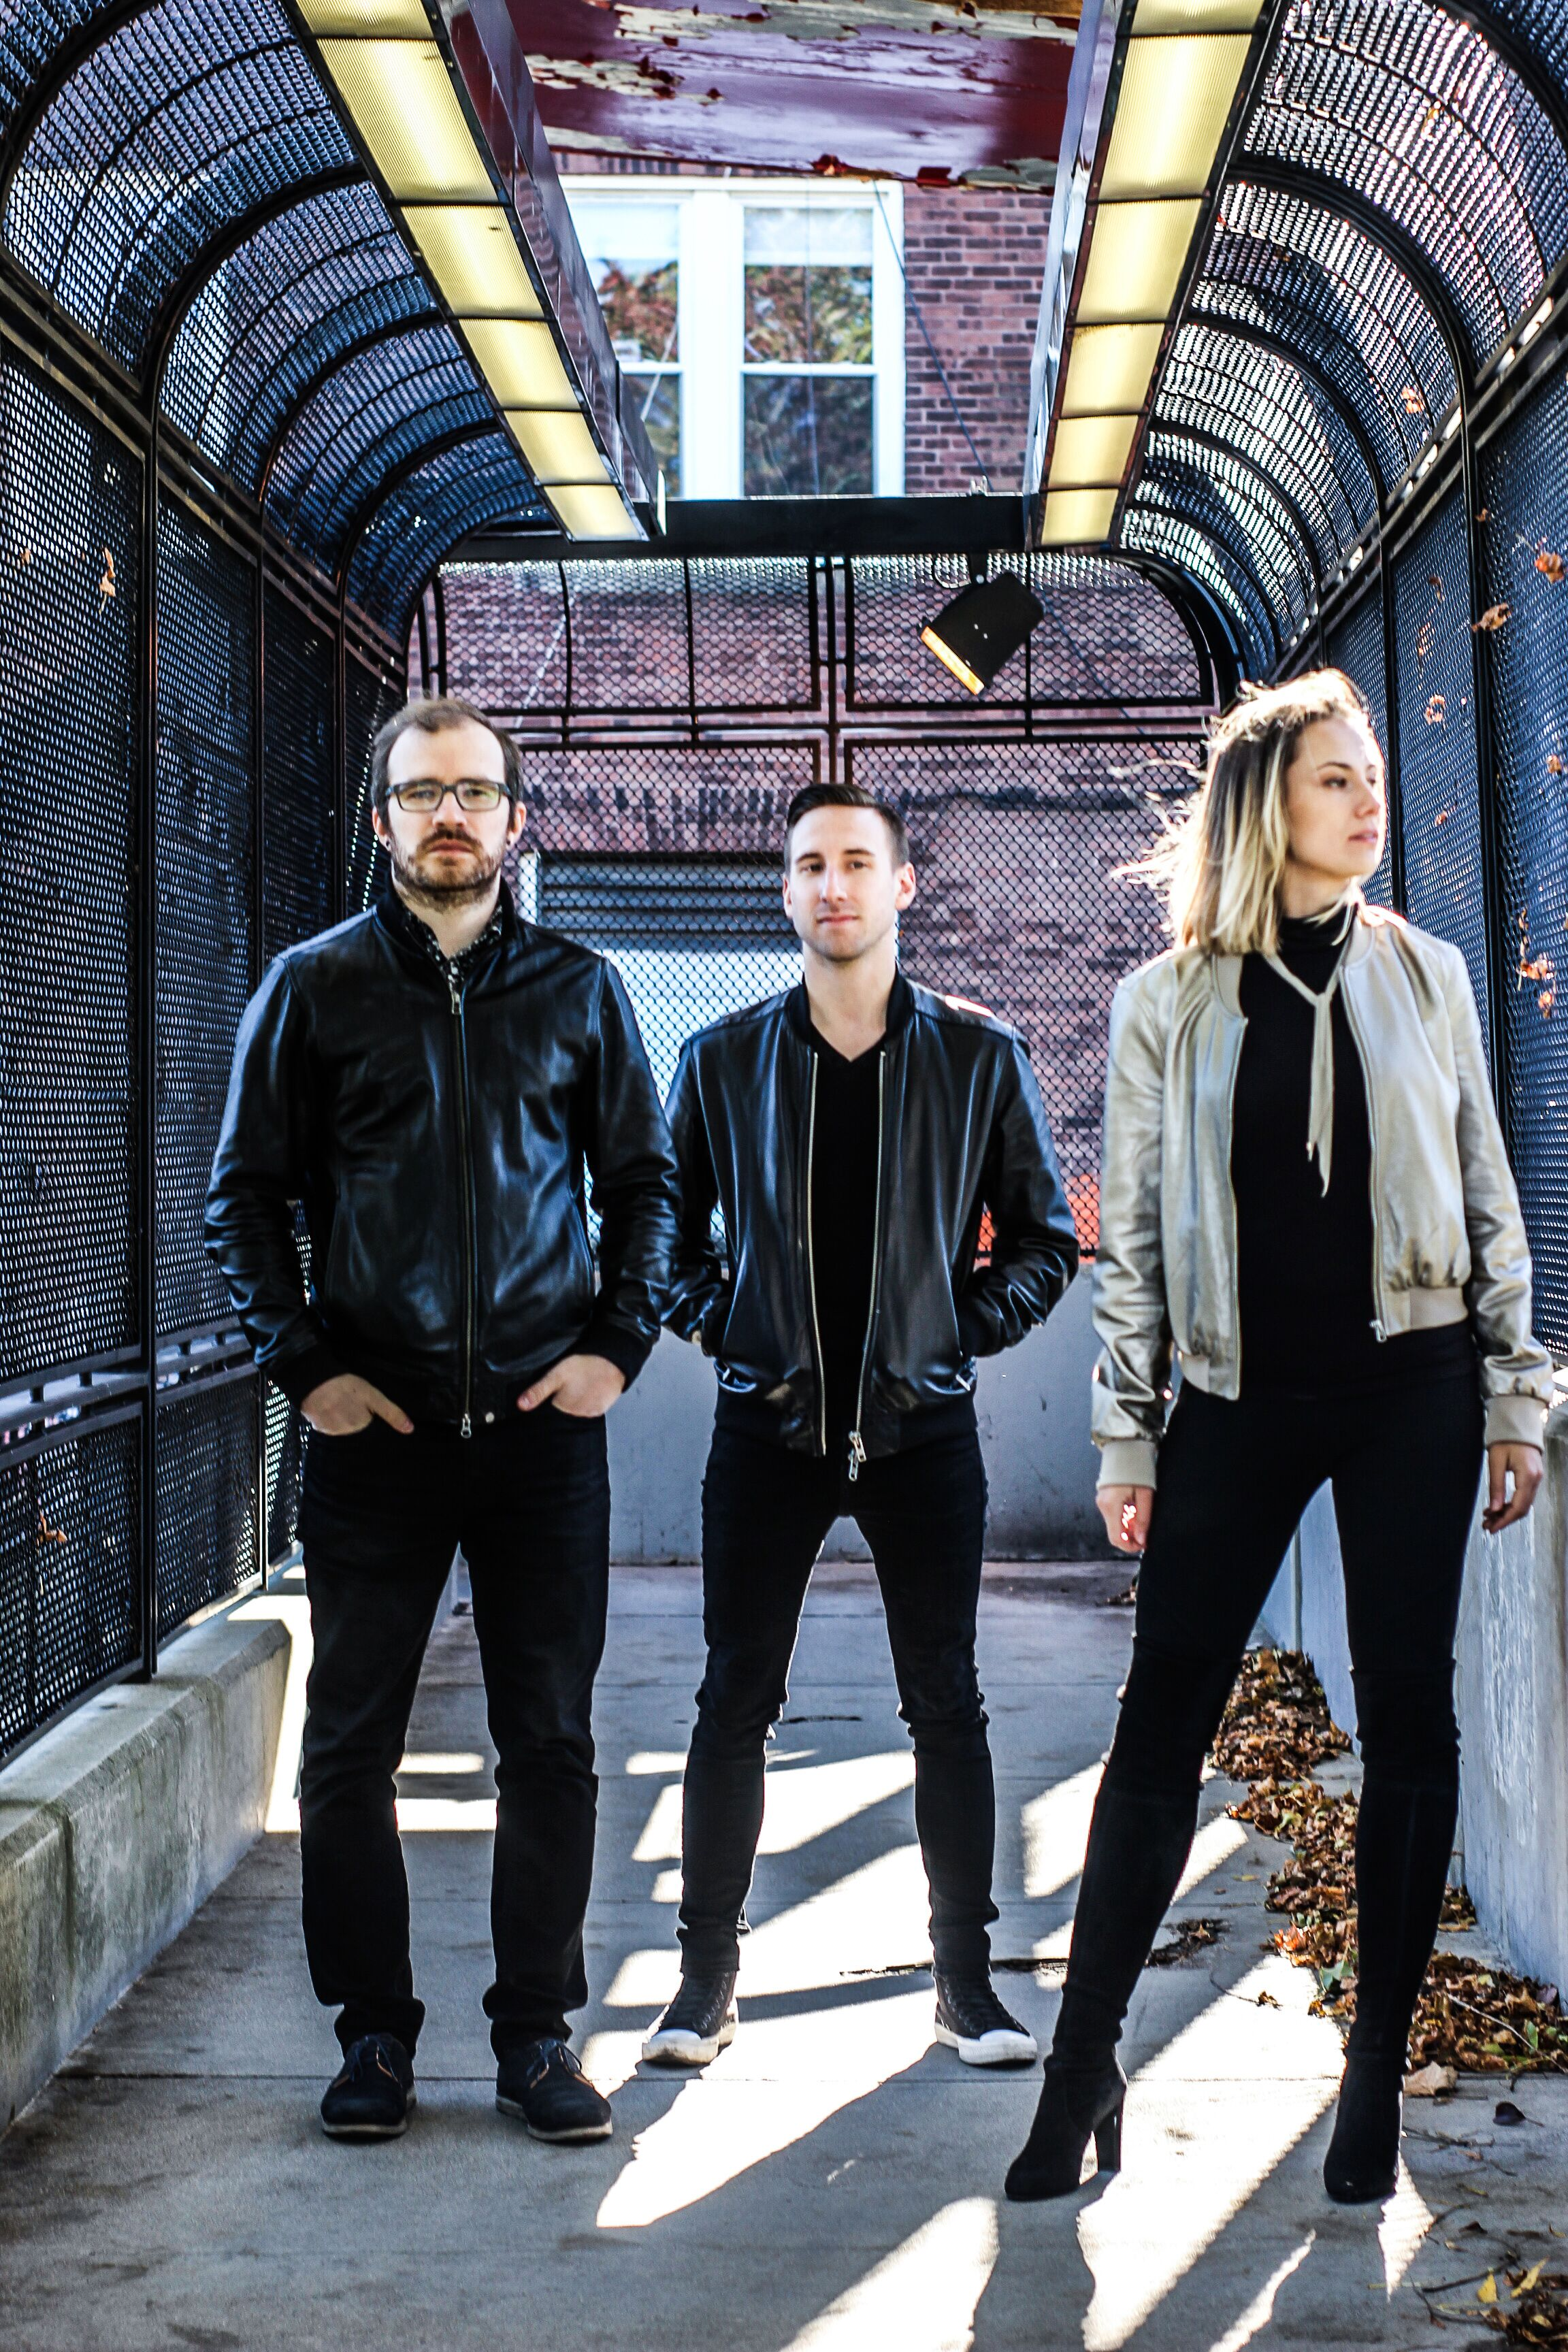 PREMIERE | Major Moment Release 'Another Illusion'